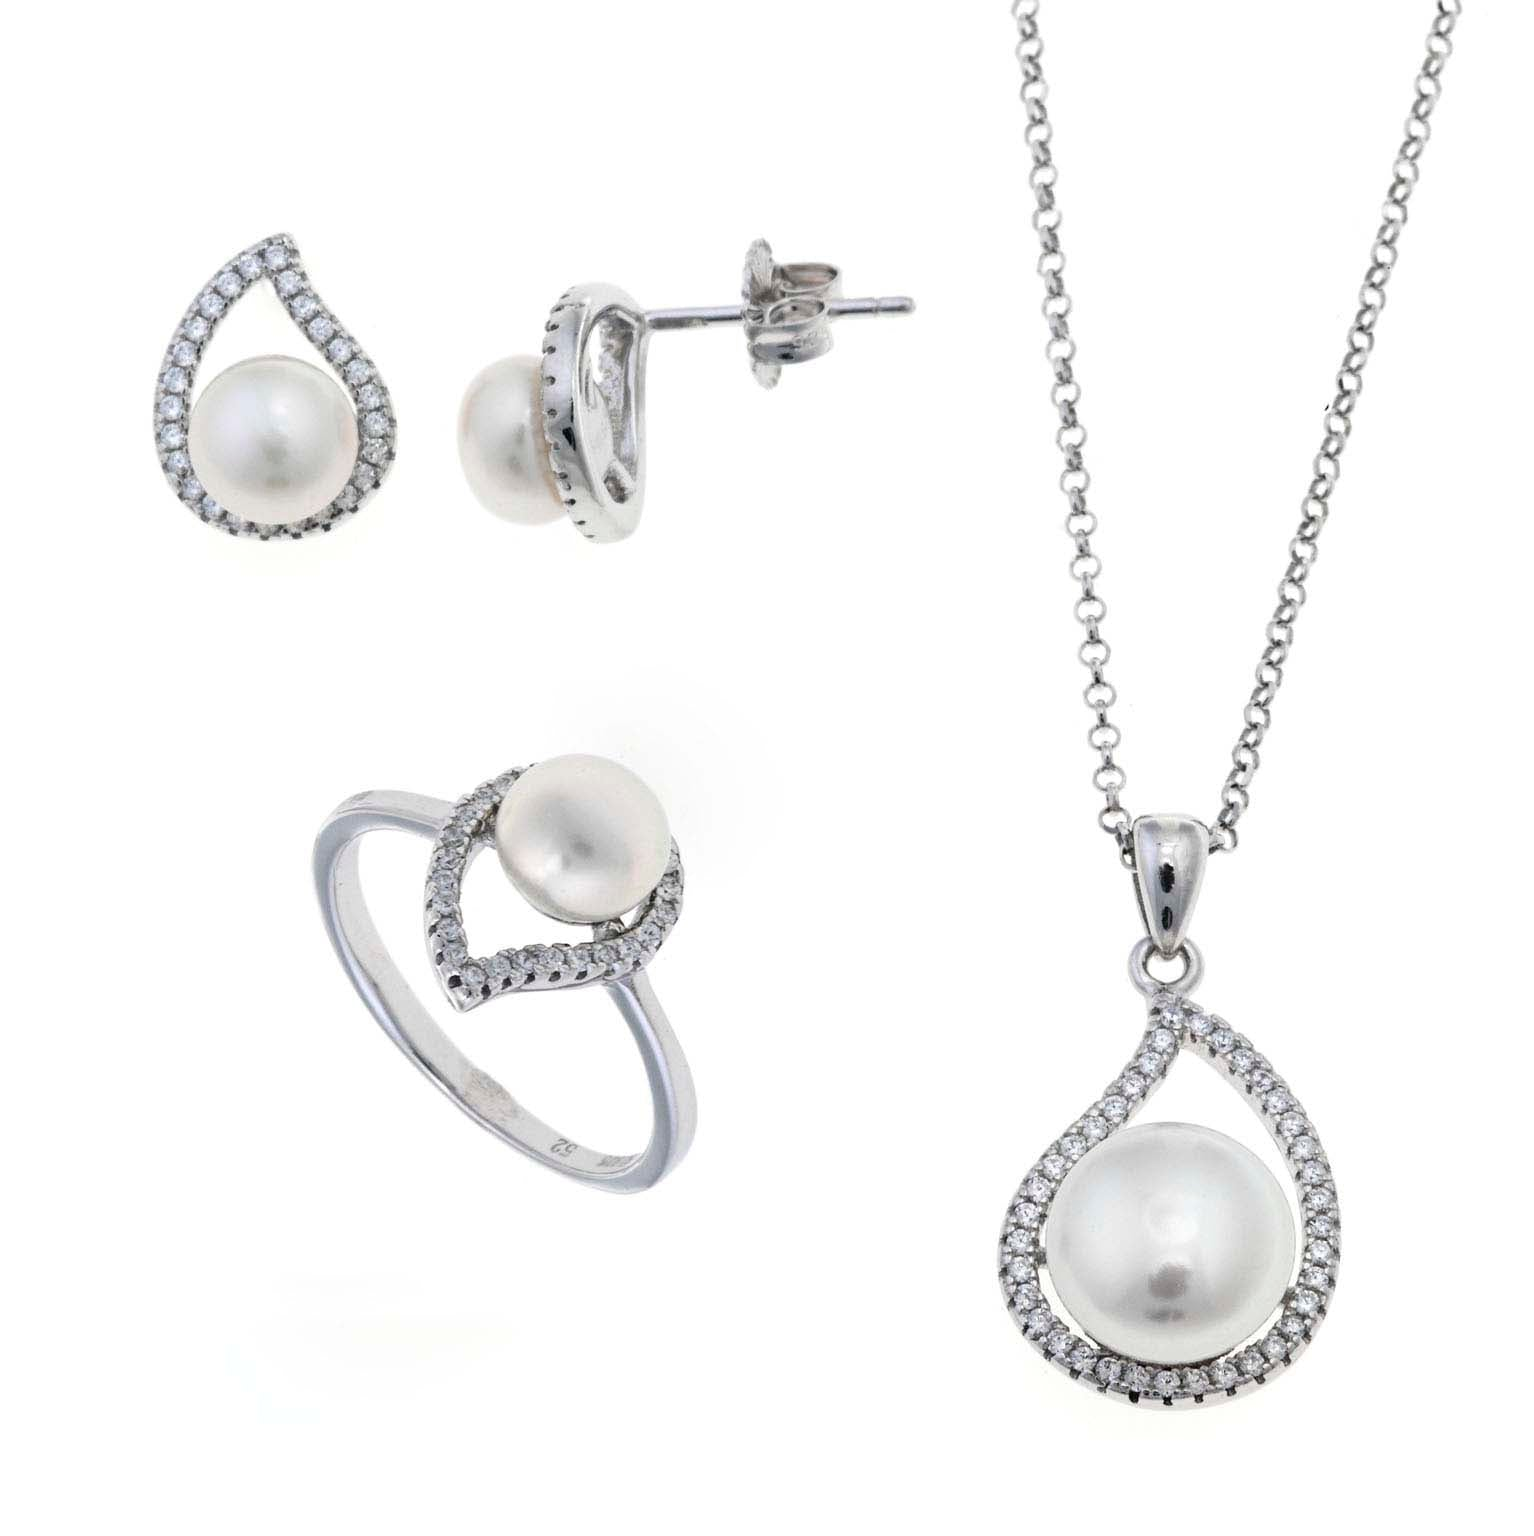 SETS WITH FRESHWATER PEARL IN TEARDROP SHAP - china-cabinet.com